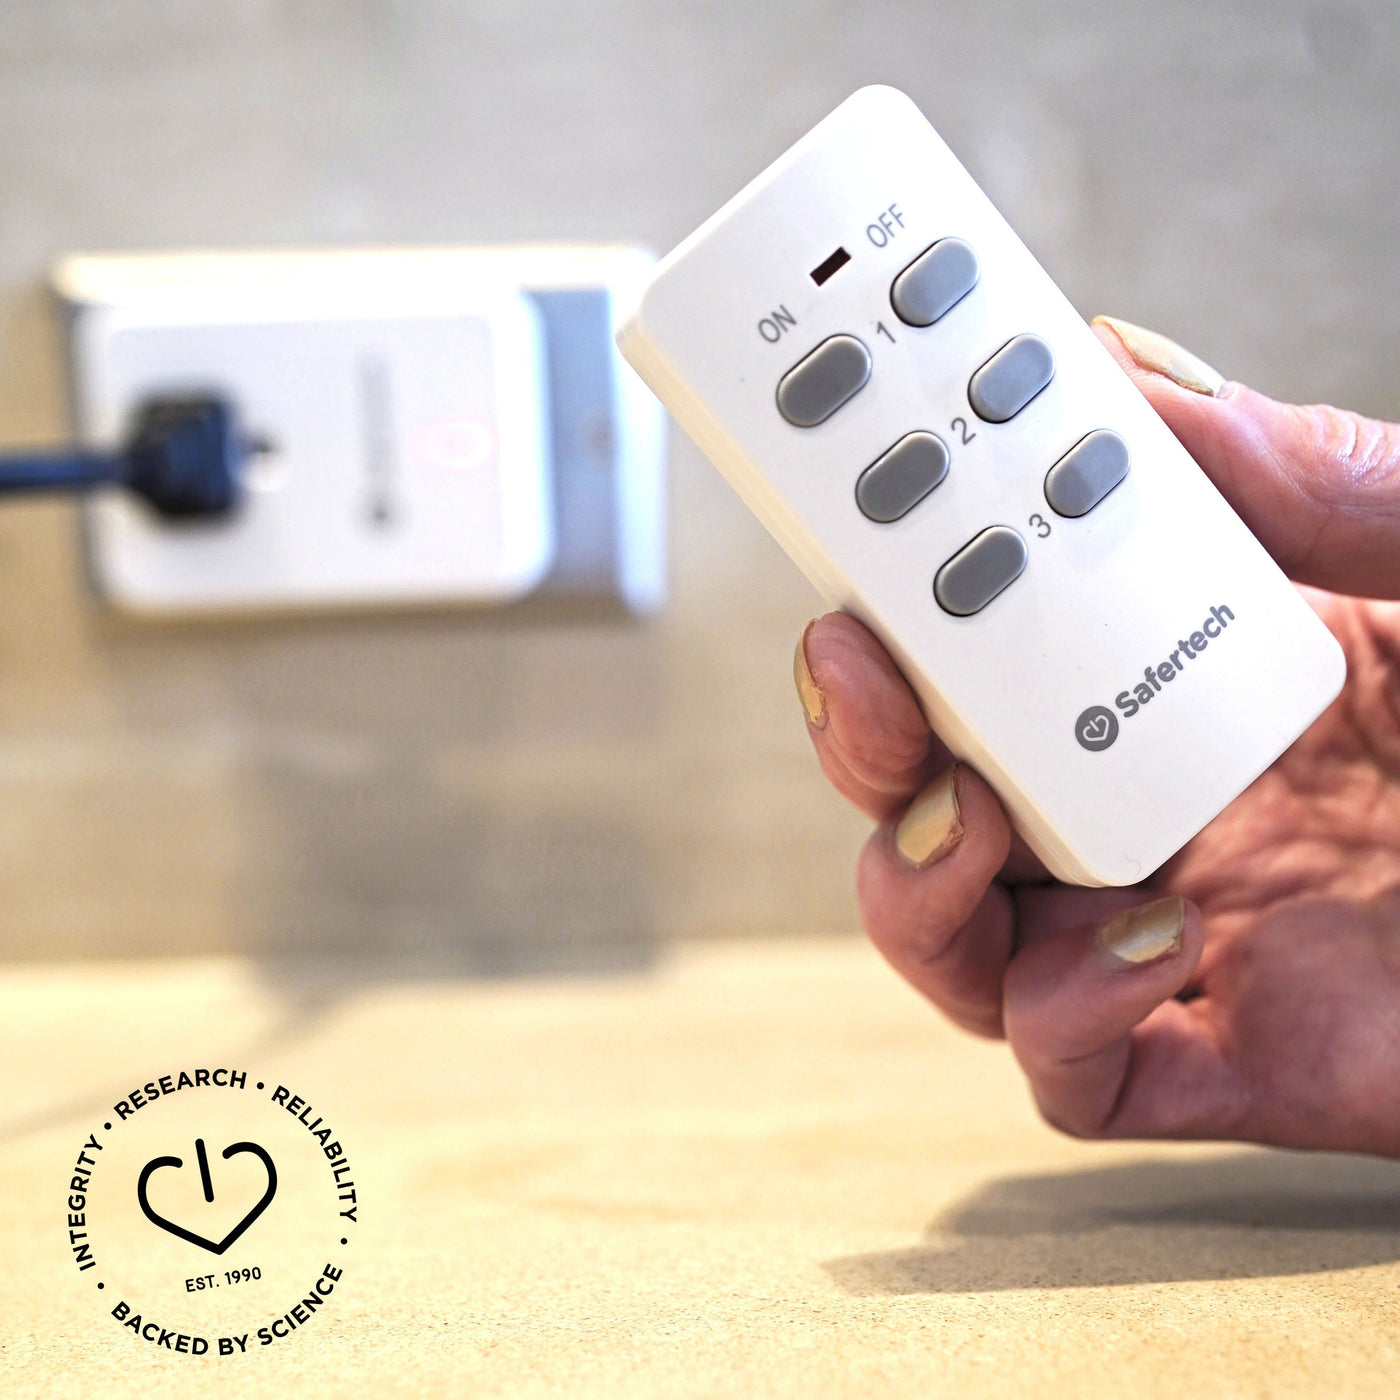 UNPLUG! Turn Off WiFi With Our Easy WiFi Kill Switch For Better Sleep and Calmer Days- Unplug! Radiation Tech Wellness